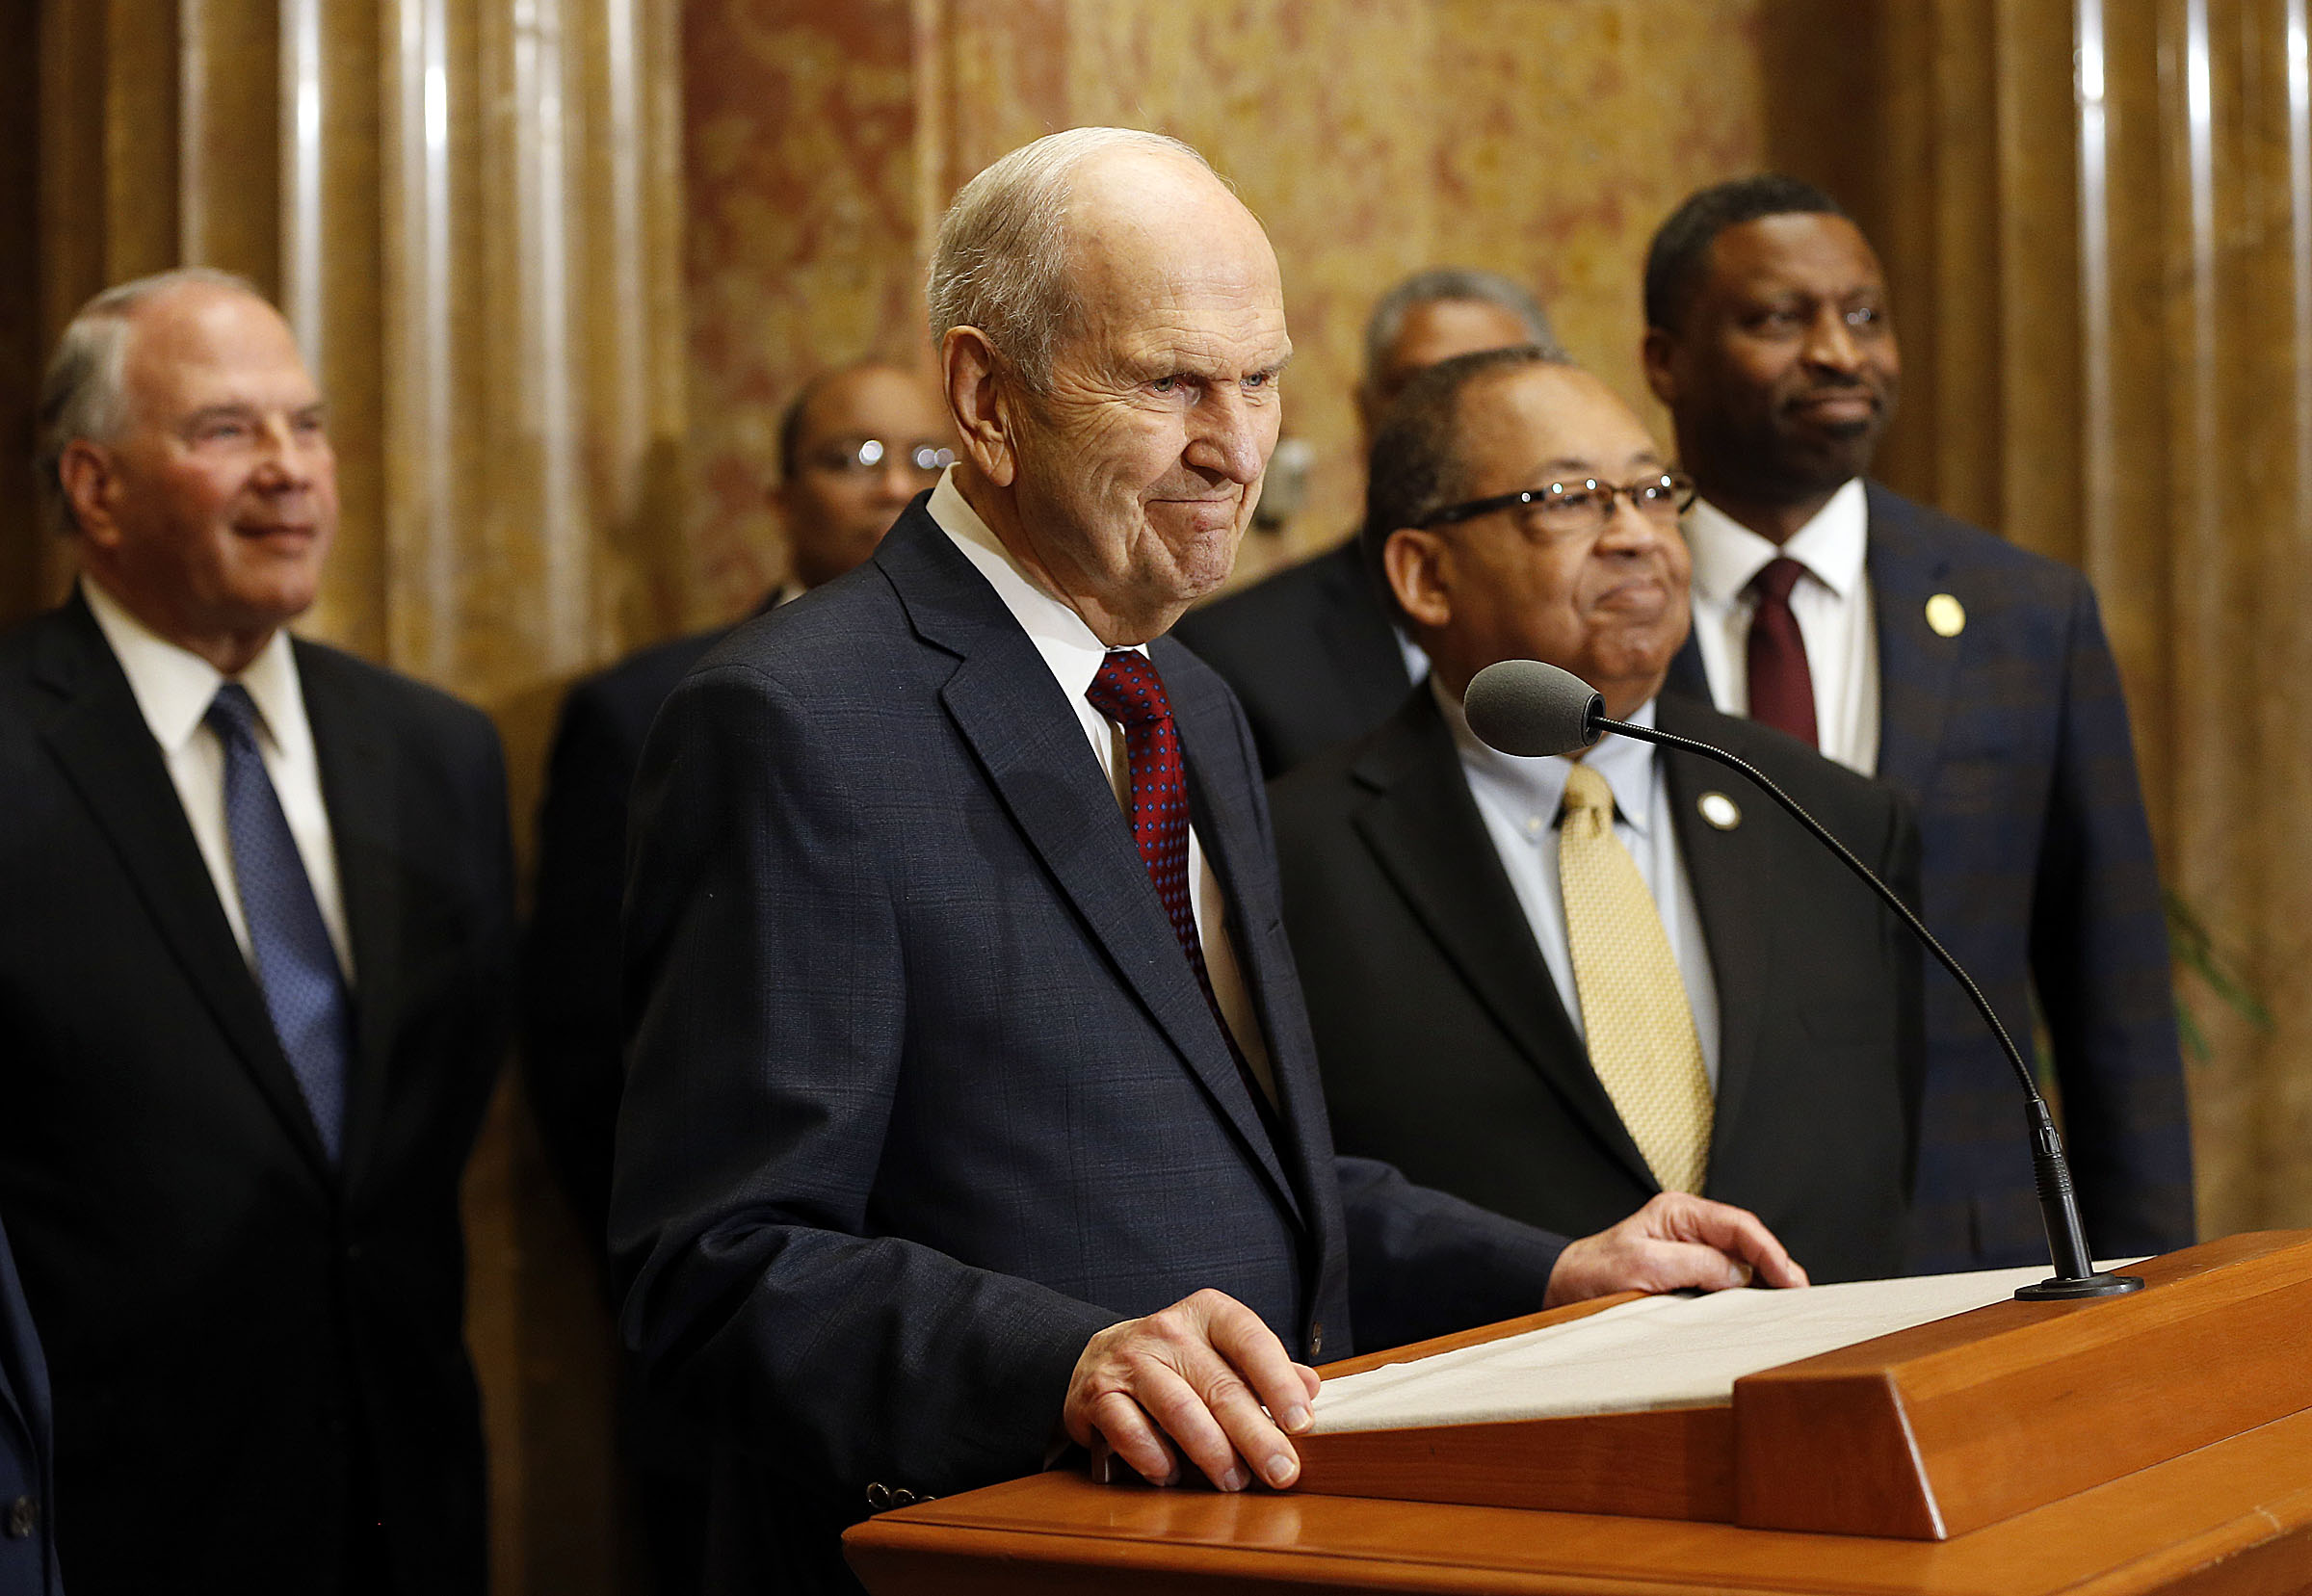 President Russell M. Nelson of The Church of Jesus Christ of Latter-day Saints speaks with national board members of the NAACP at right during a press conference in Salt Lake City on Thursday, May 17, 2018.